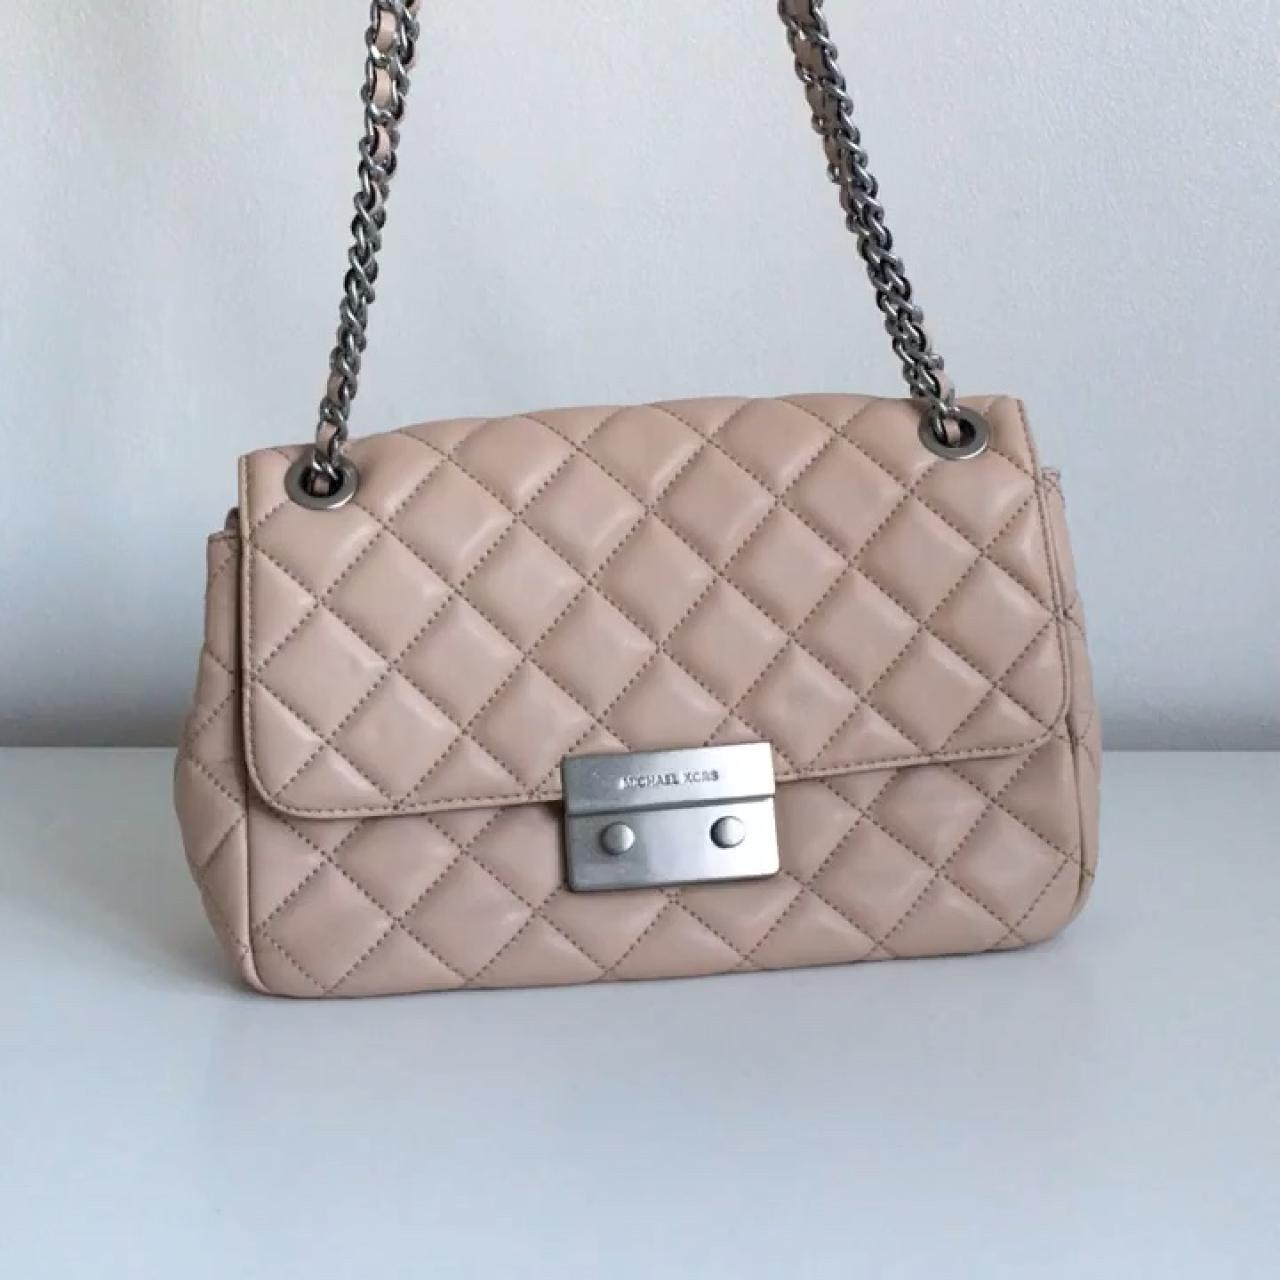 61bf55619055 Michael Kors Sloan quilted bag in blush. Silver hardware. of - Depop